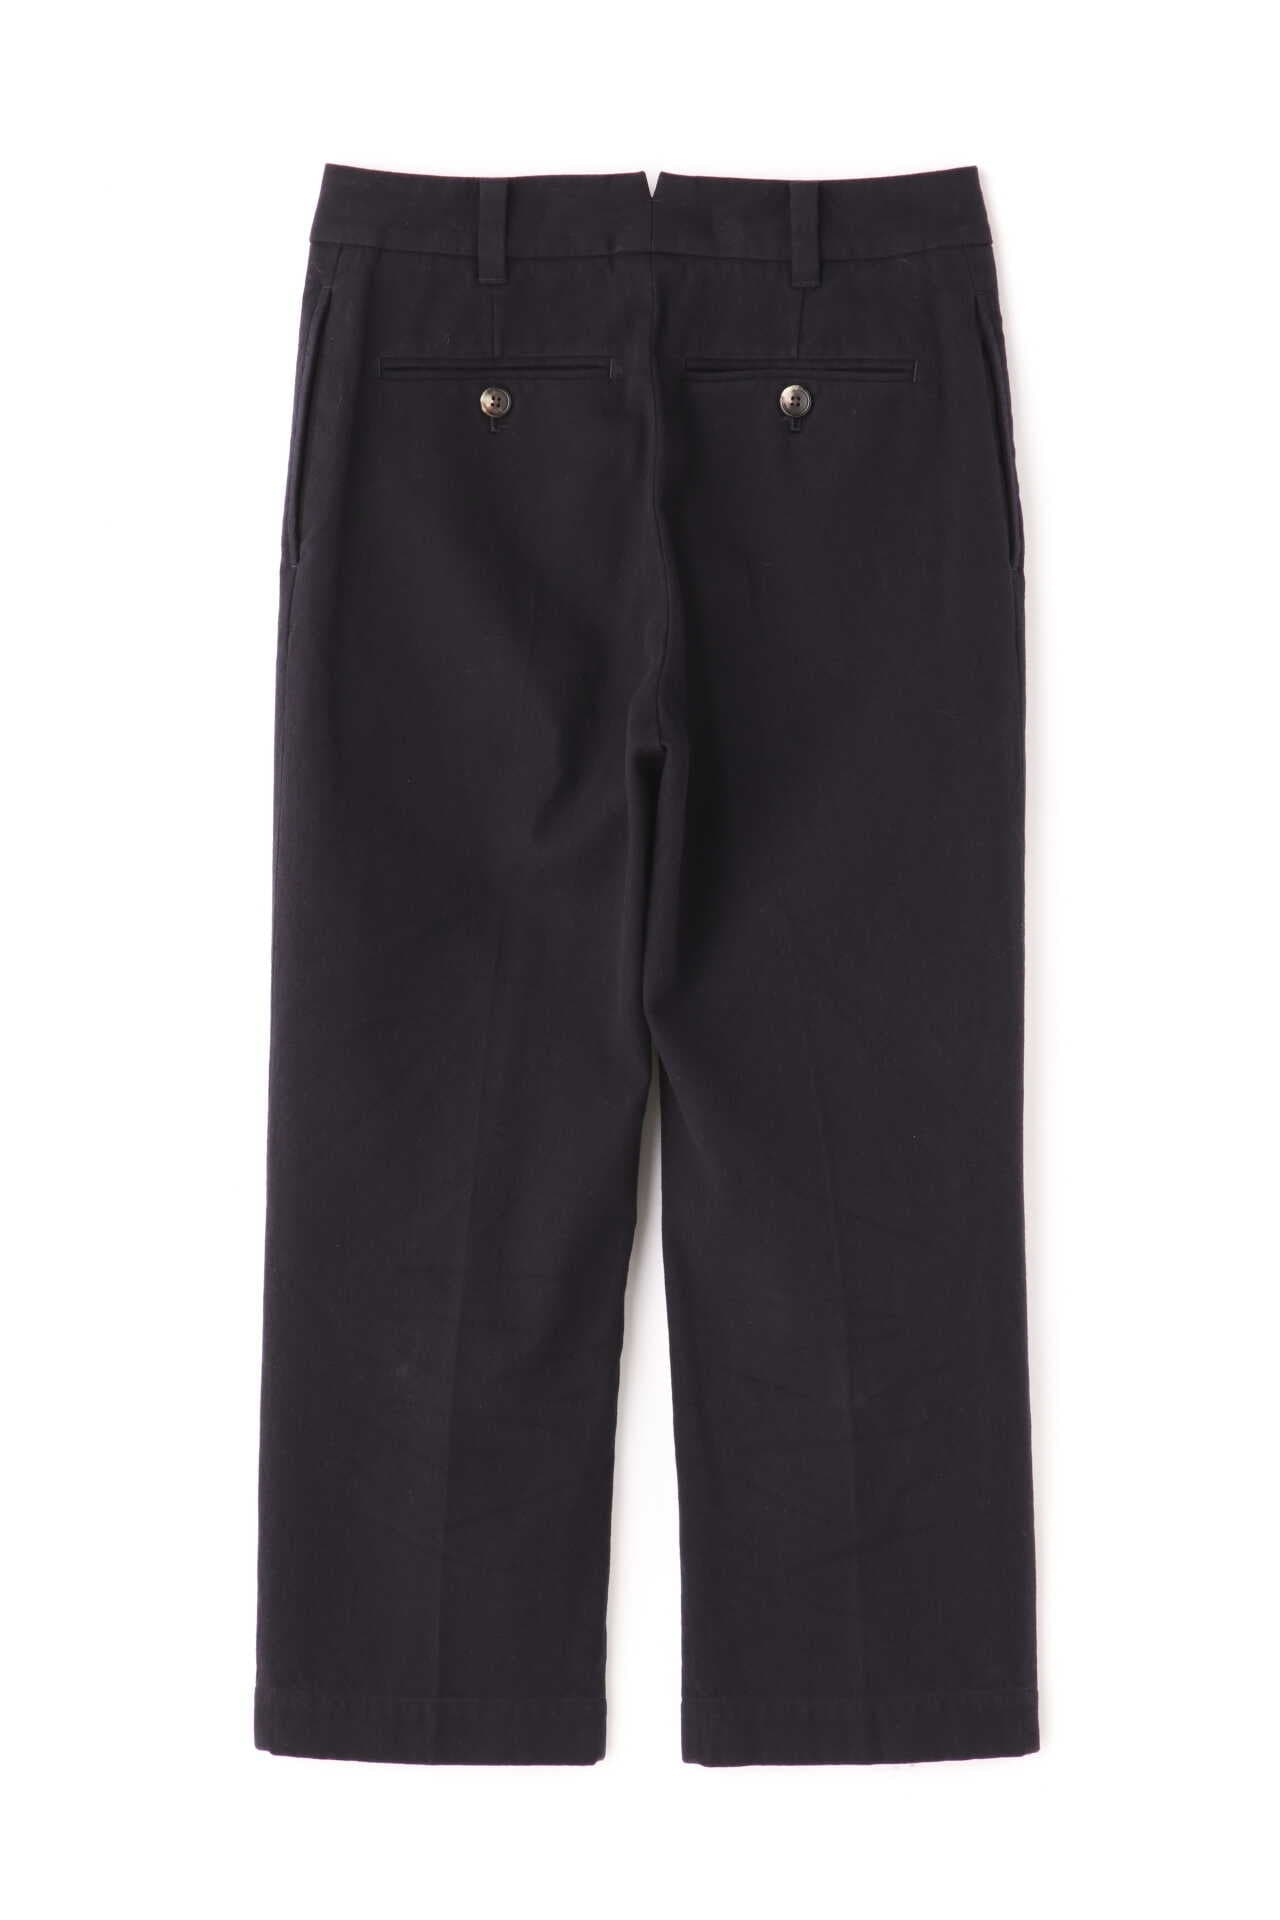 WASHED COTTON TWILL8